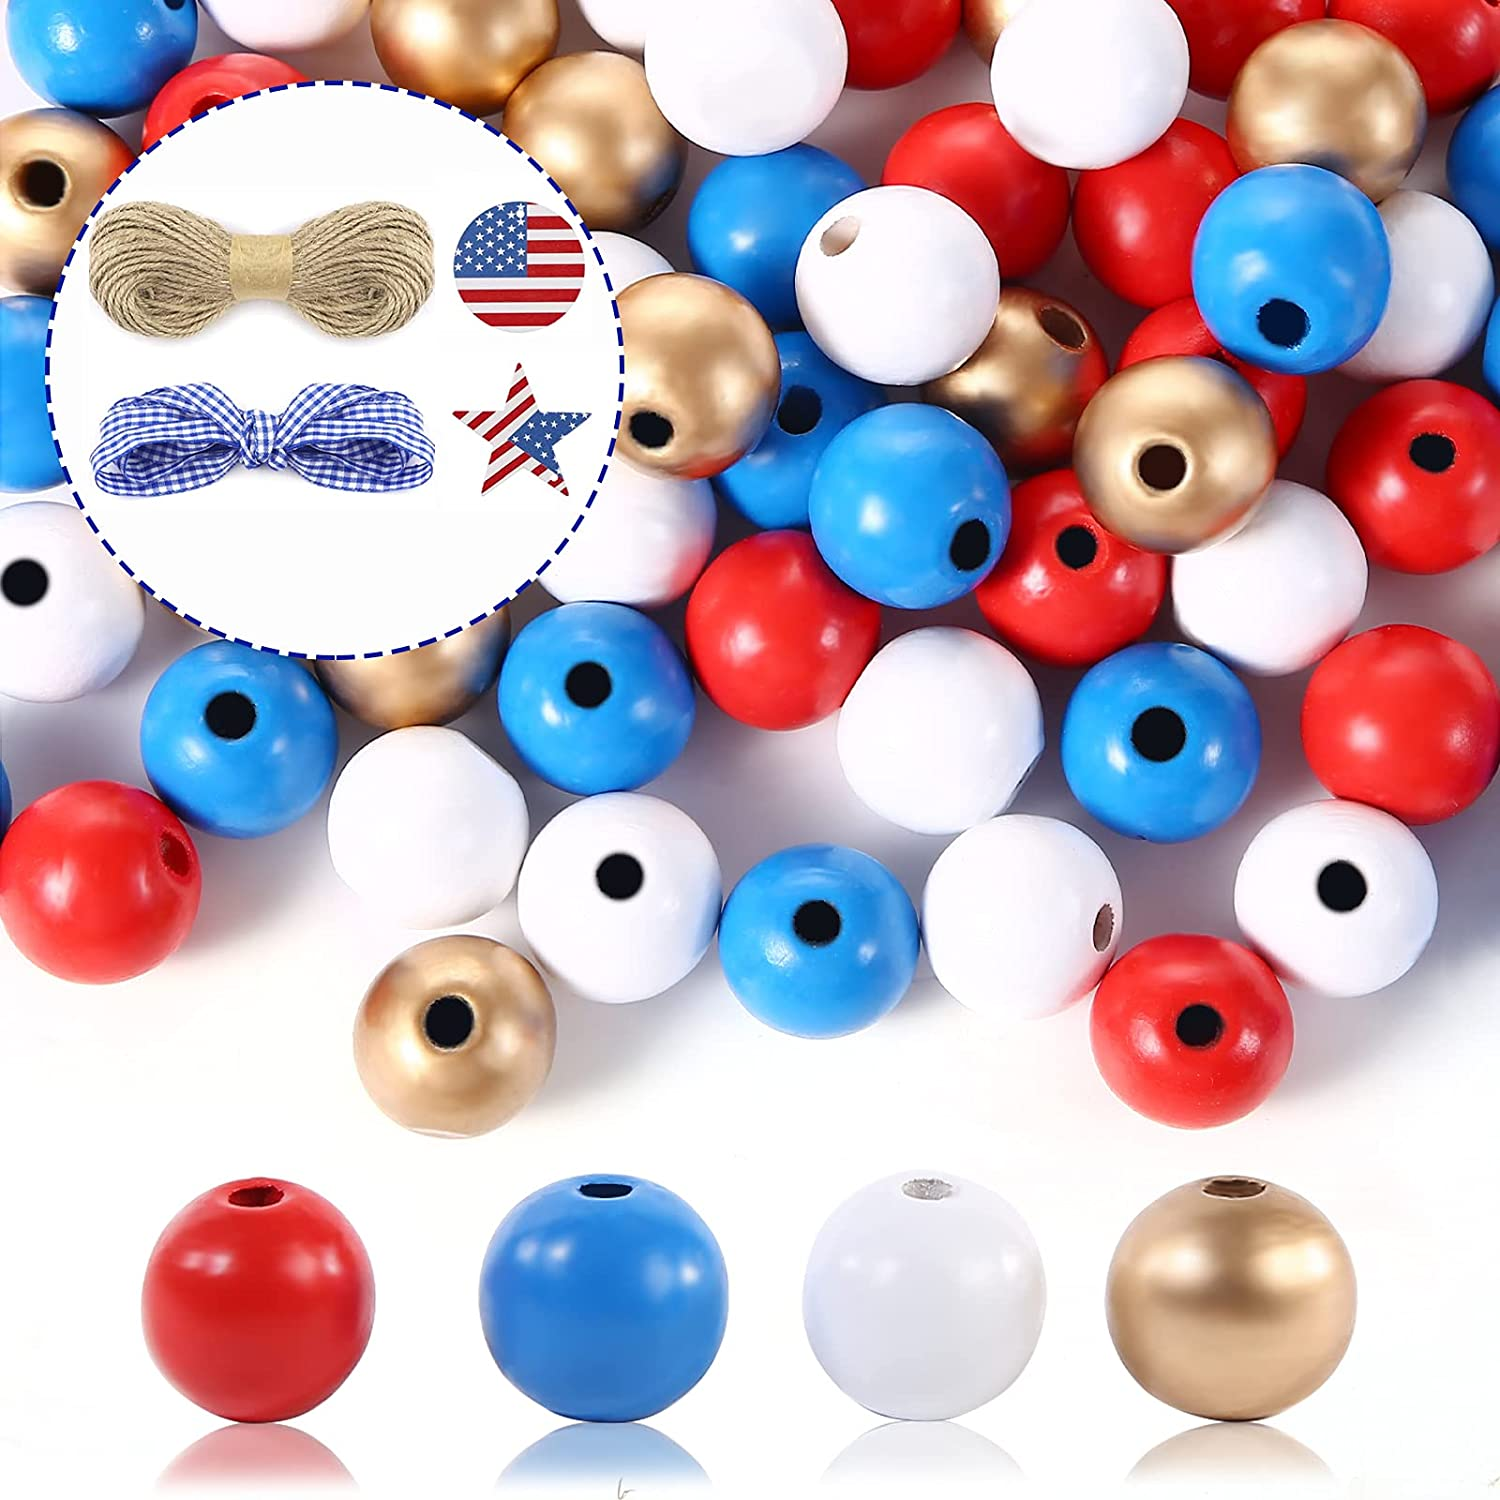 160 Pieces Independence Day Beaded Combination Set 4th of July Natural Wood Beads with Rope Red White Blue Flag and Rustic Tasselsfor DIY Crafts Jewelry Decors